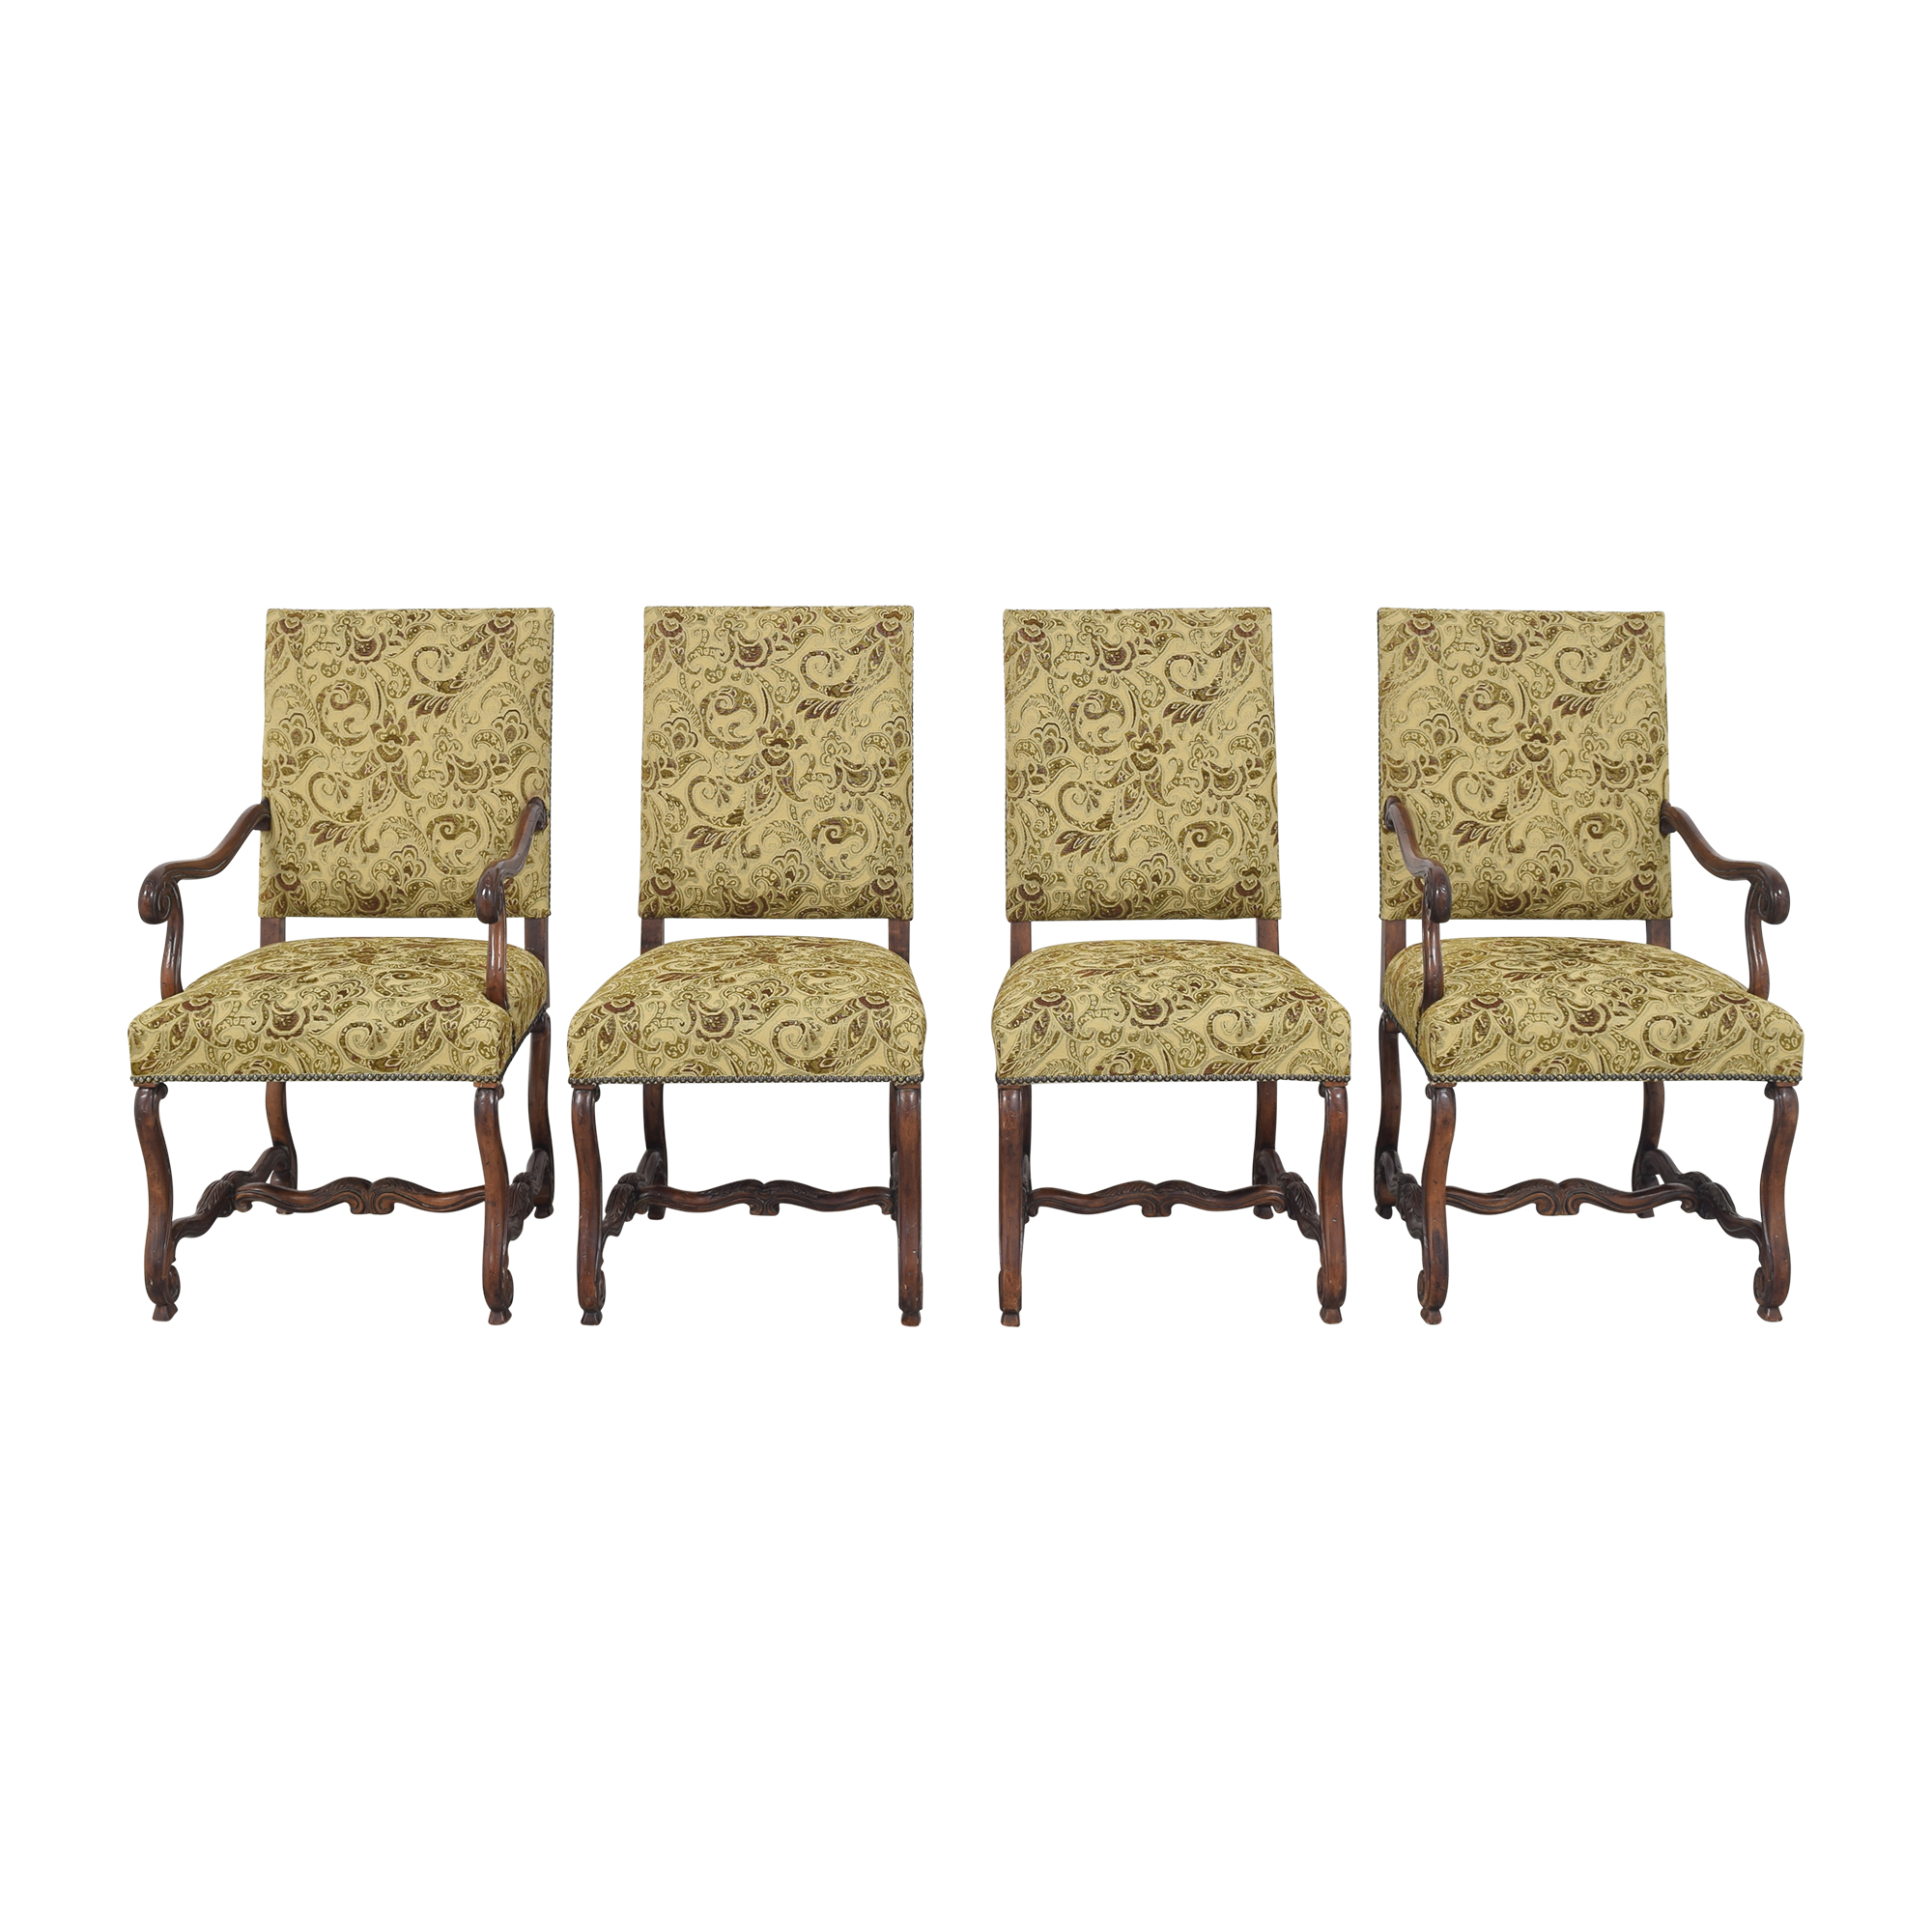 shop Safavieh Safavieh Paisley Upholstered Dining Chairs online